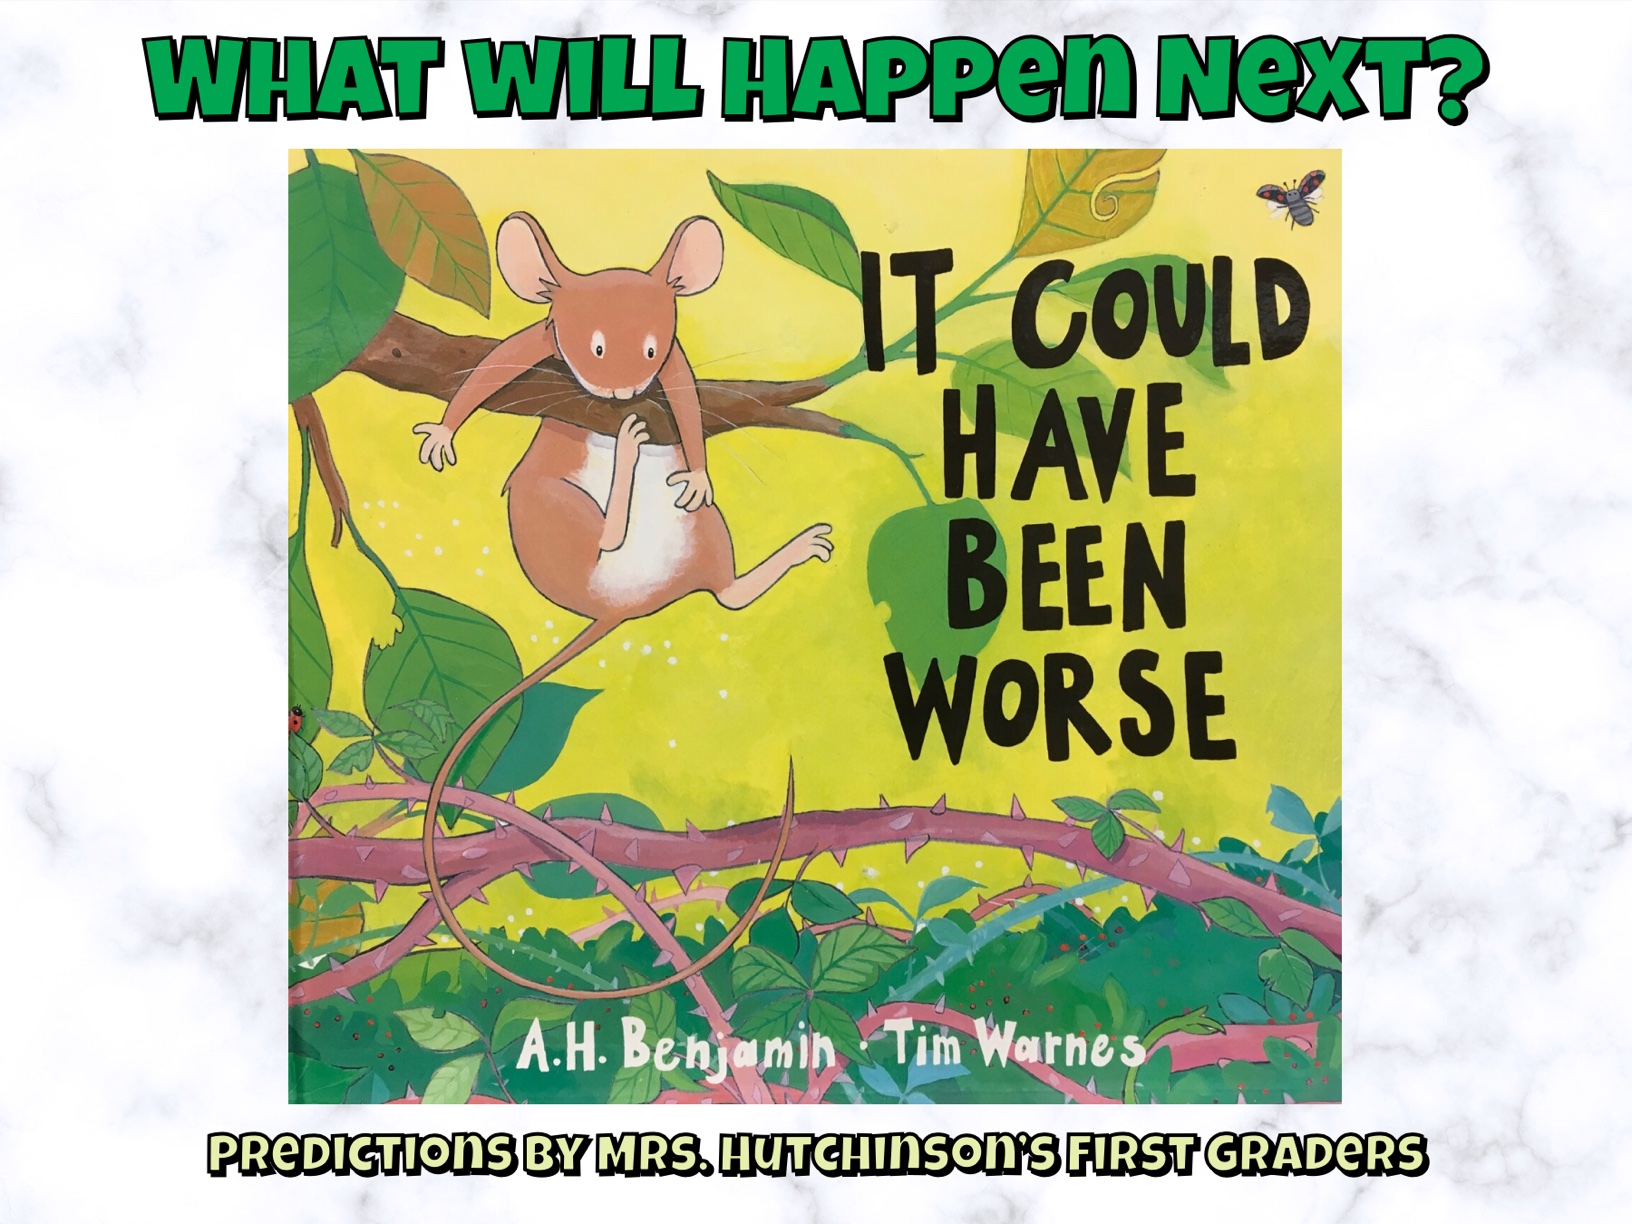 What Happened to the Snake_Mrs. Hutchinson's Class Predictions